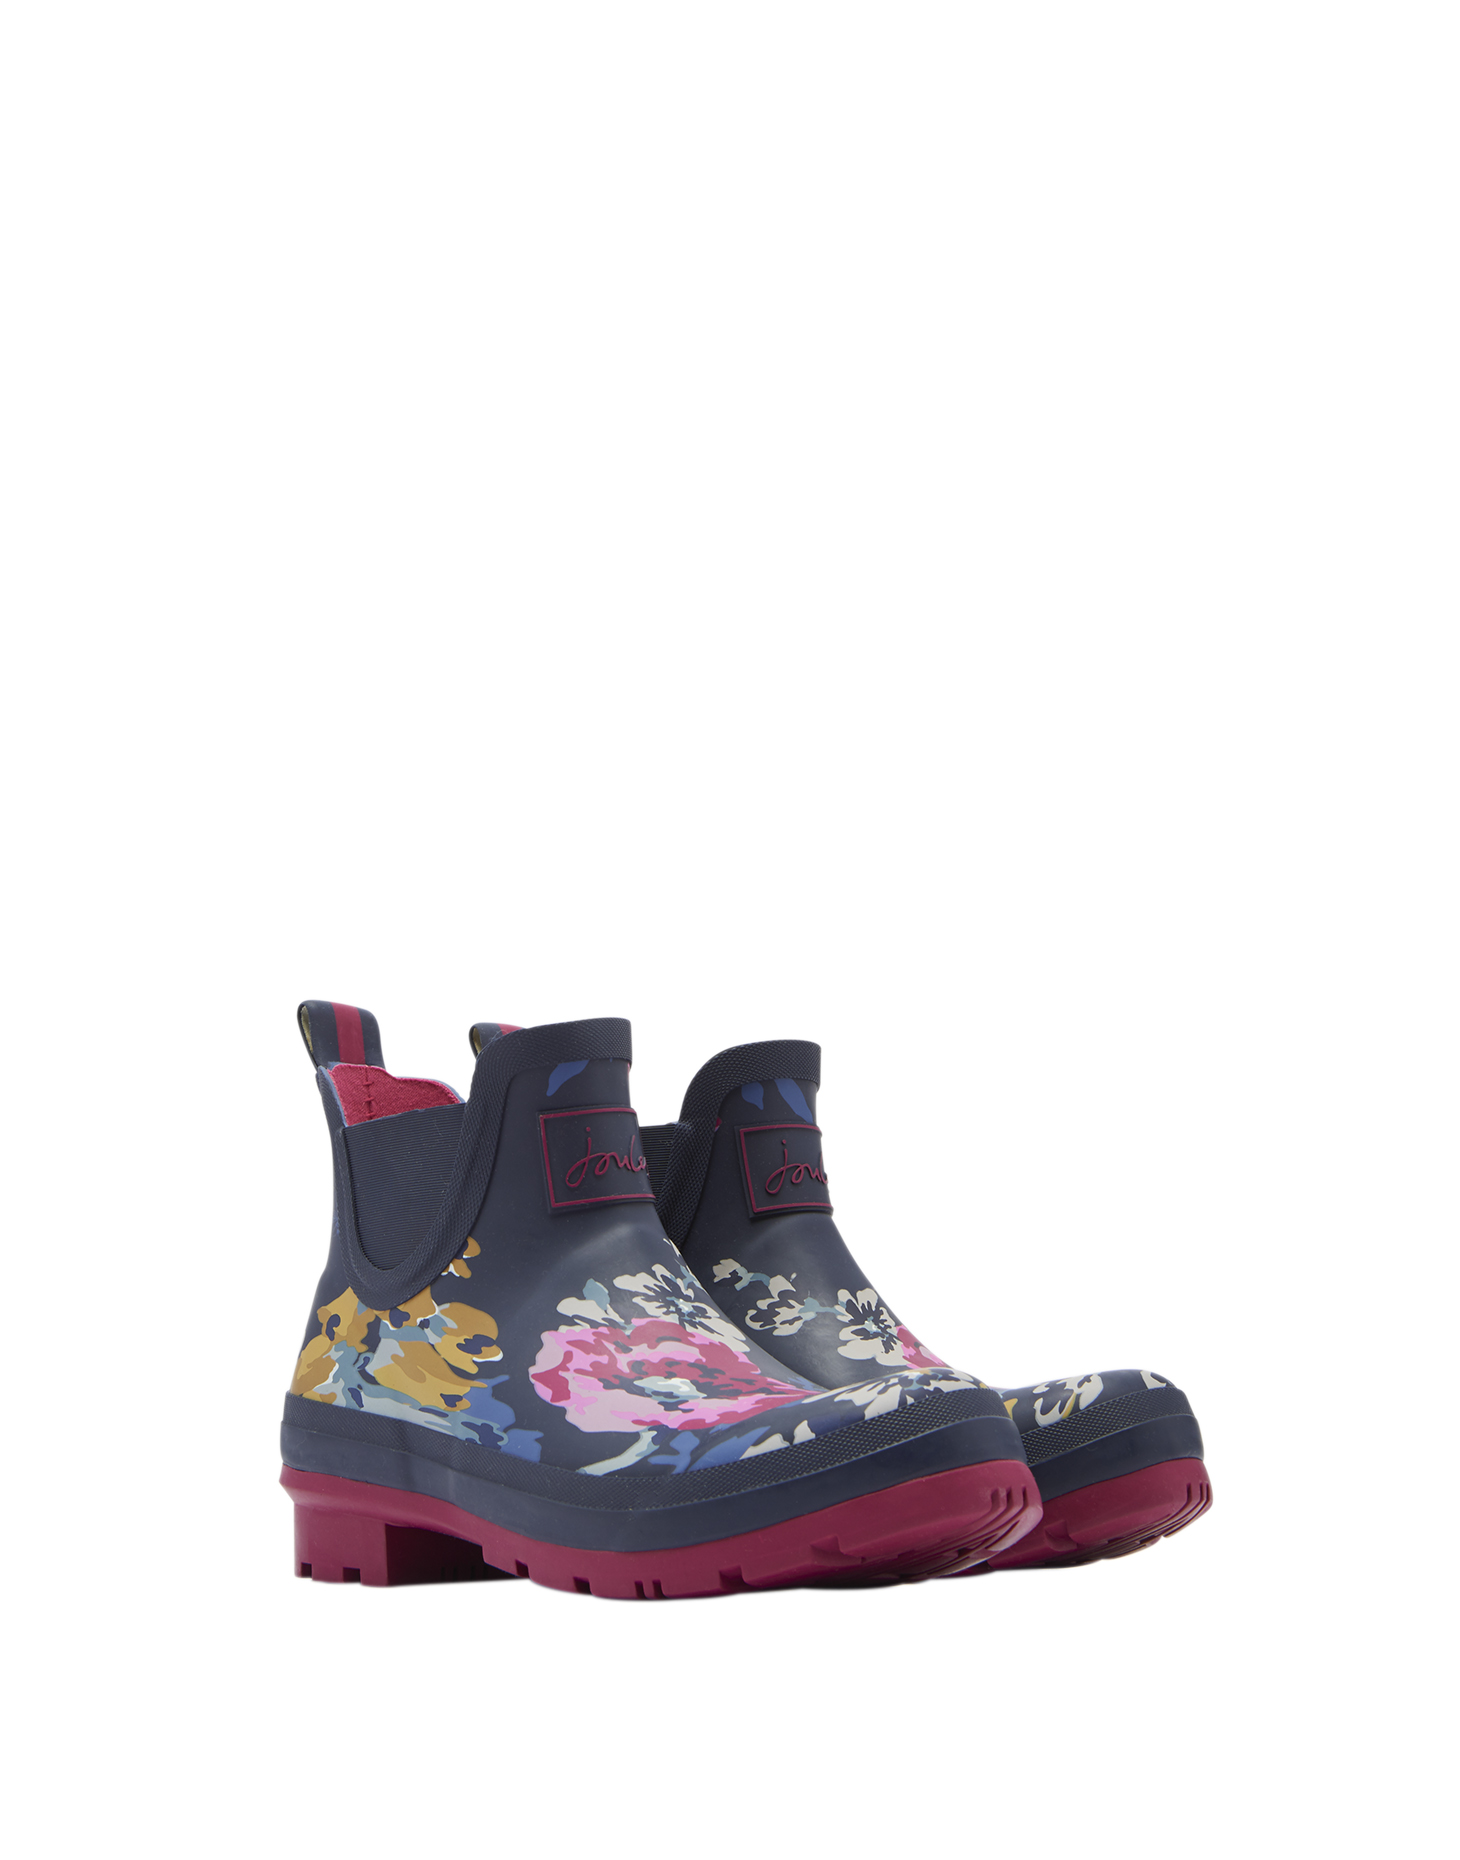 Joules-Wellibob-Short-Height-Printed-Wellies-Welly-Boot-ALL-COLOURS miniature 7